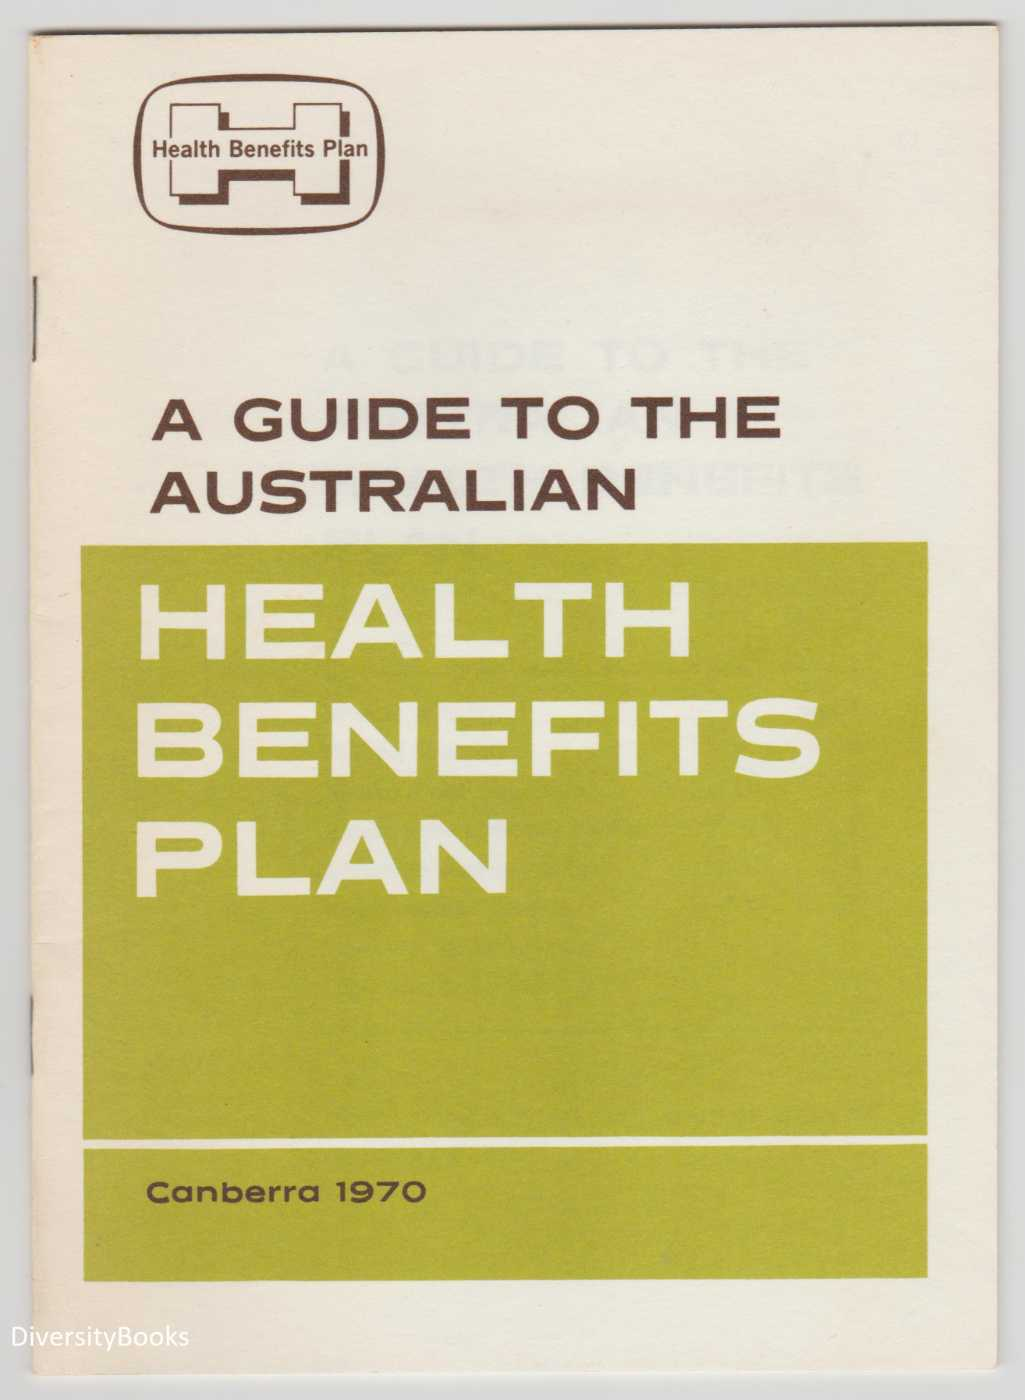 Image for A GUIDE TO THE AUSTRALIAN HEALTH BENEFITS PLAN. Canberra 1970